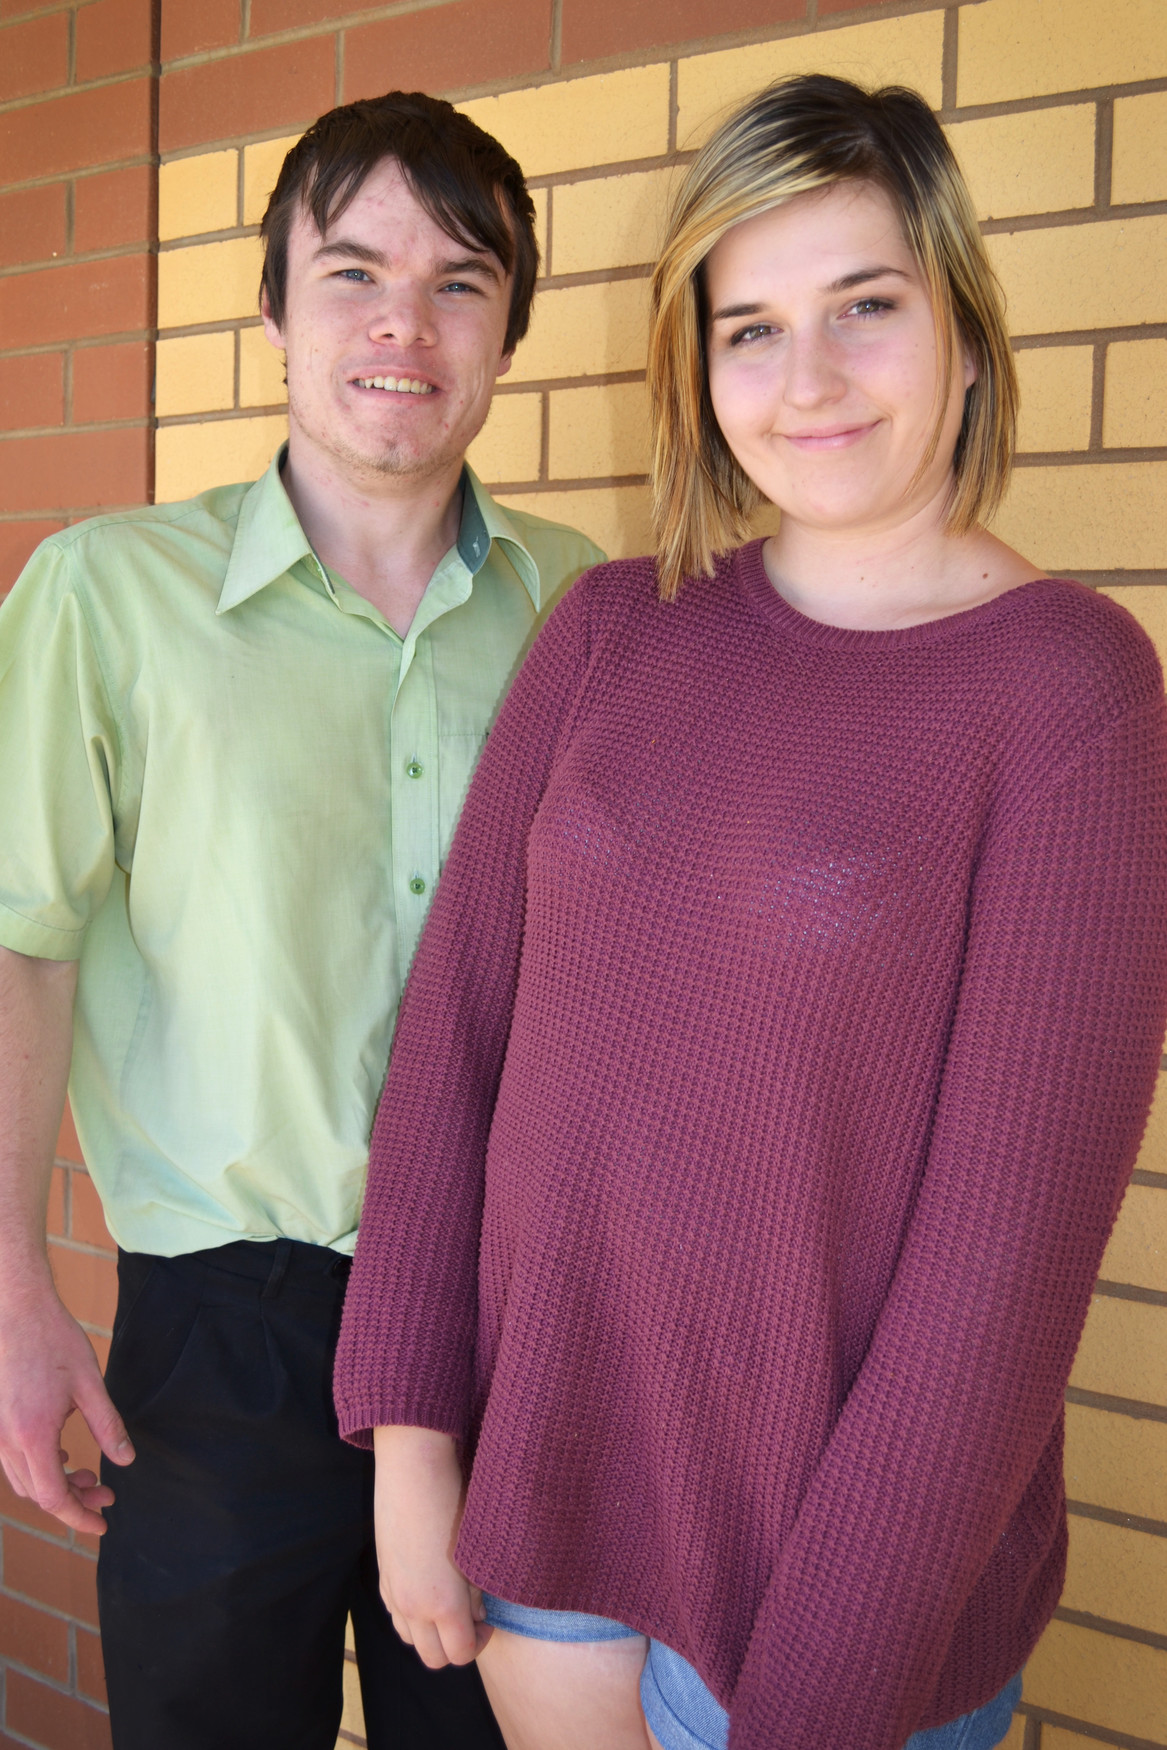 Future leaders: Long Tan Leadership and Teamwork Award recipients Jayden Beckwith and Katie Garth. Picture: Toni Brient.